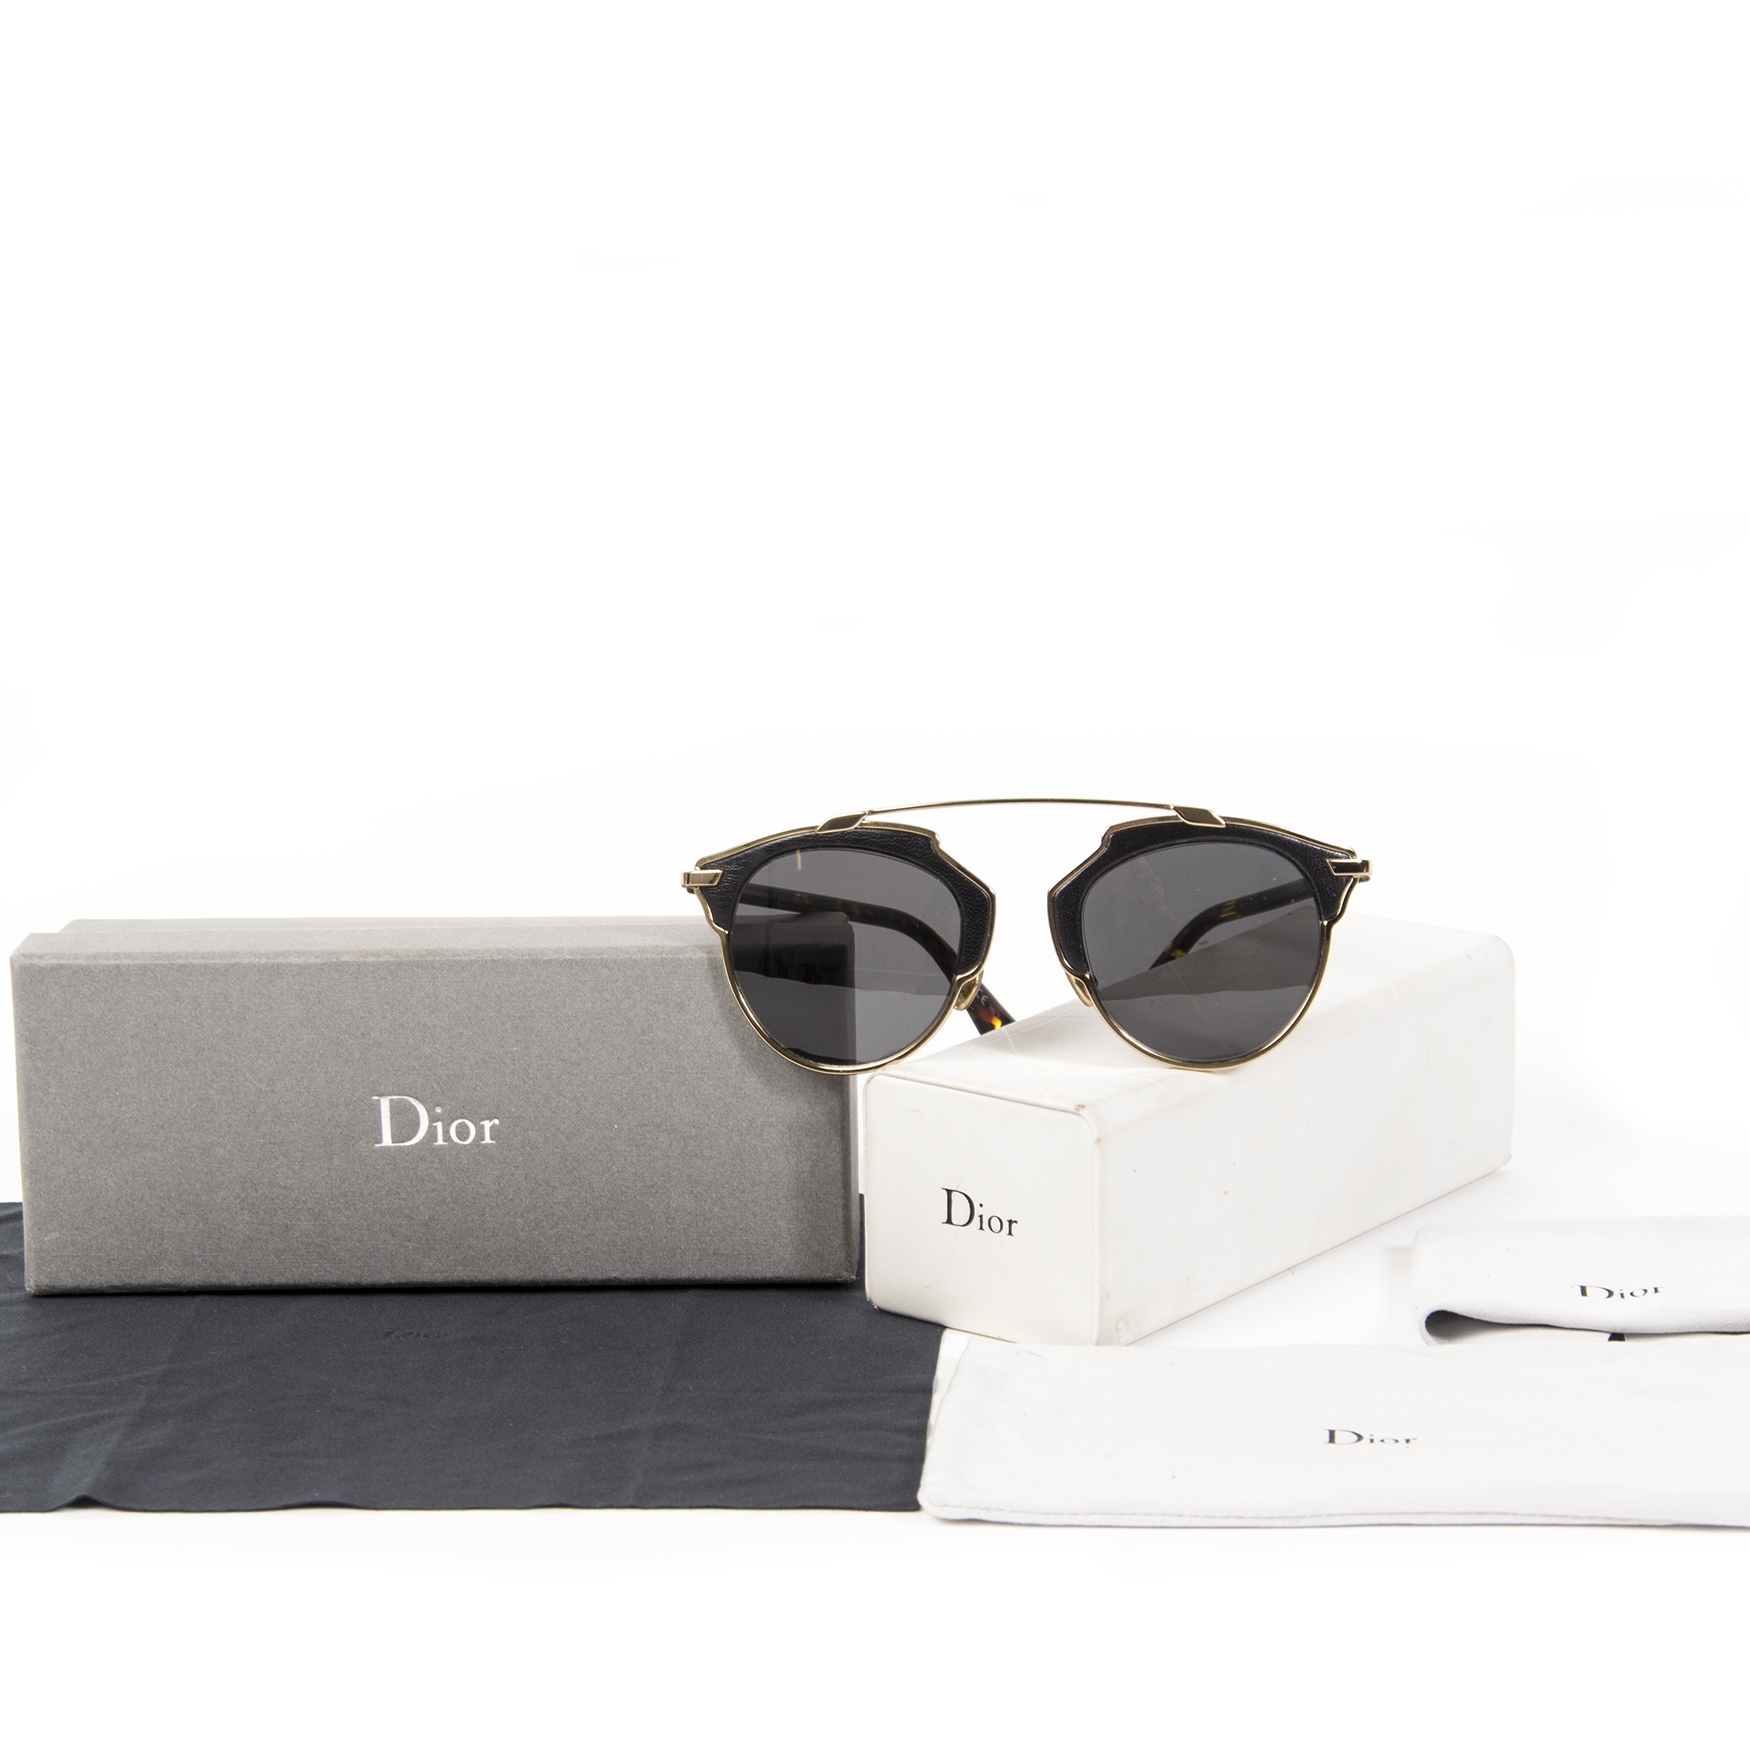 Dior So Real Sunglasses Black Gold